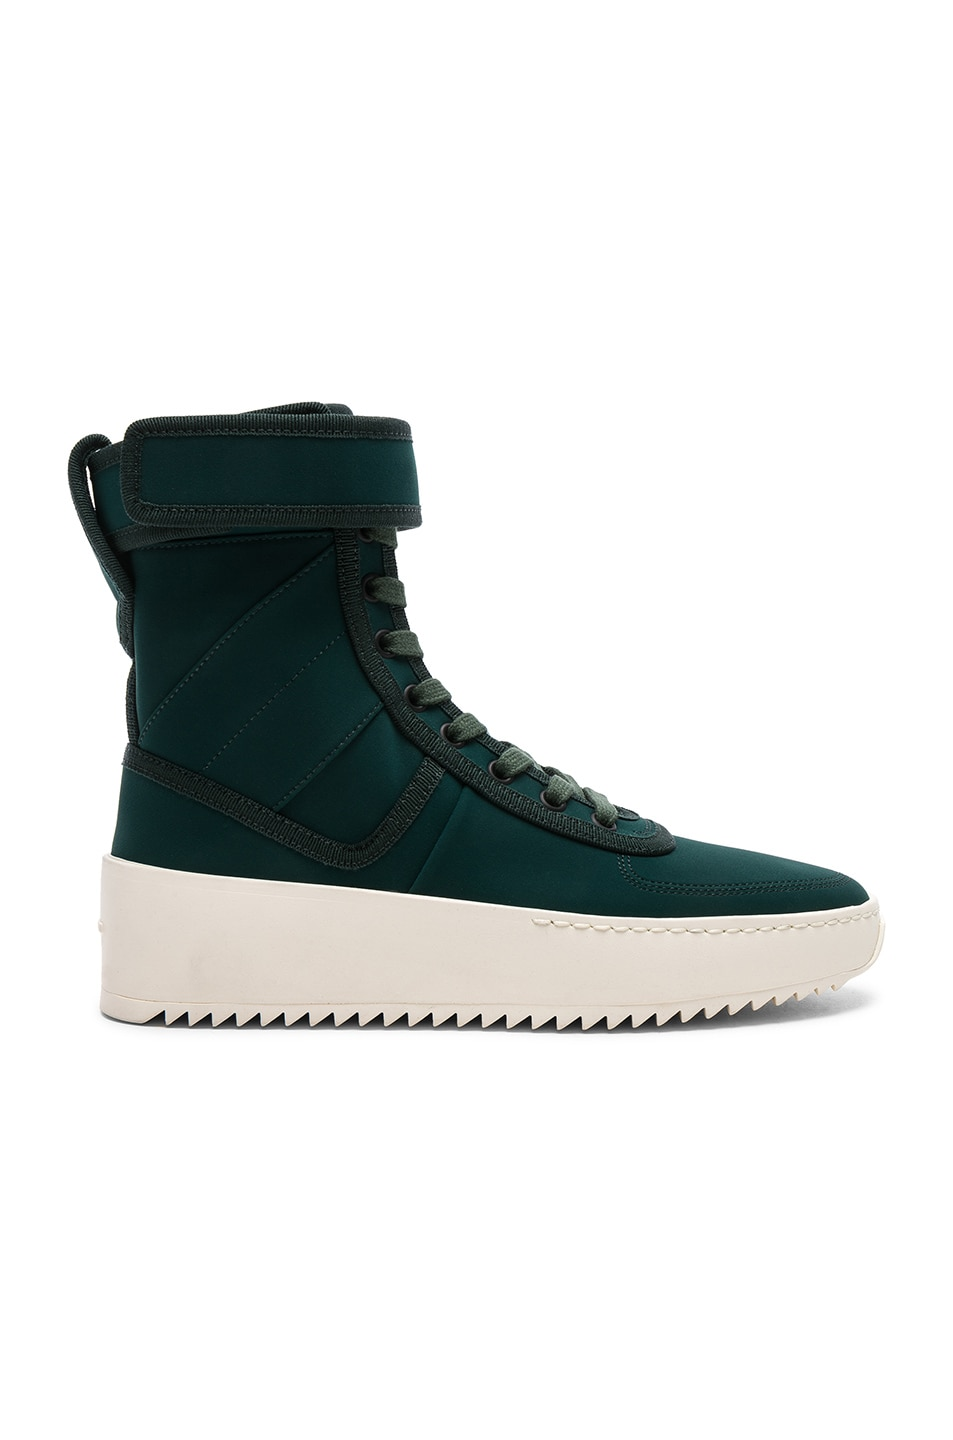 b2bdaf7d70a5 Image 1 of Fear of God Nylon Military Sneakers in Green